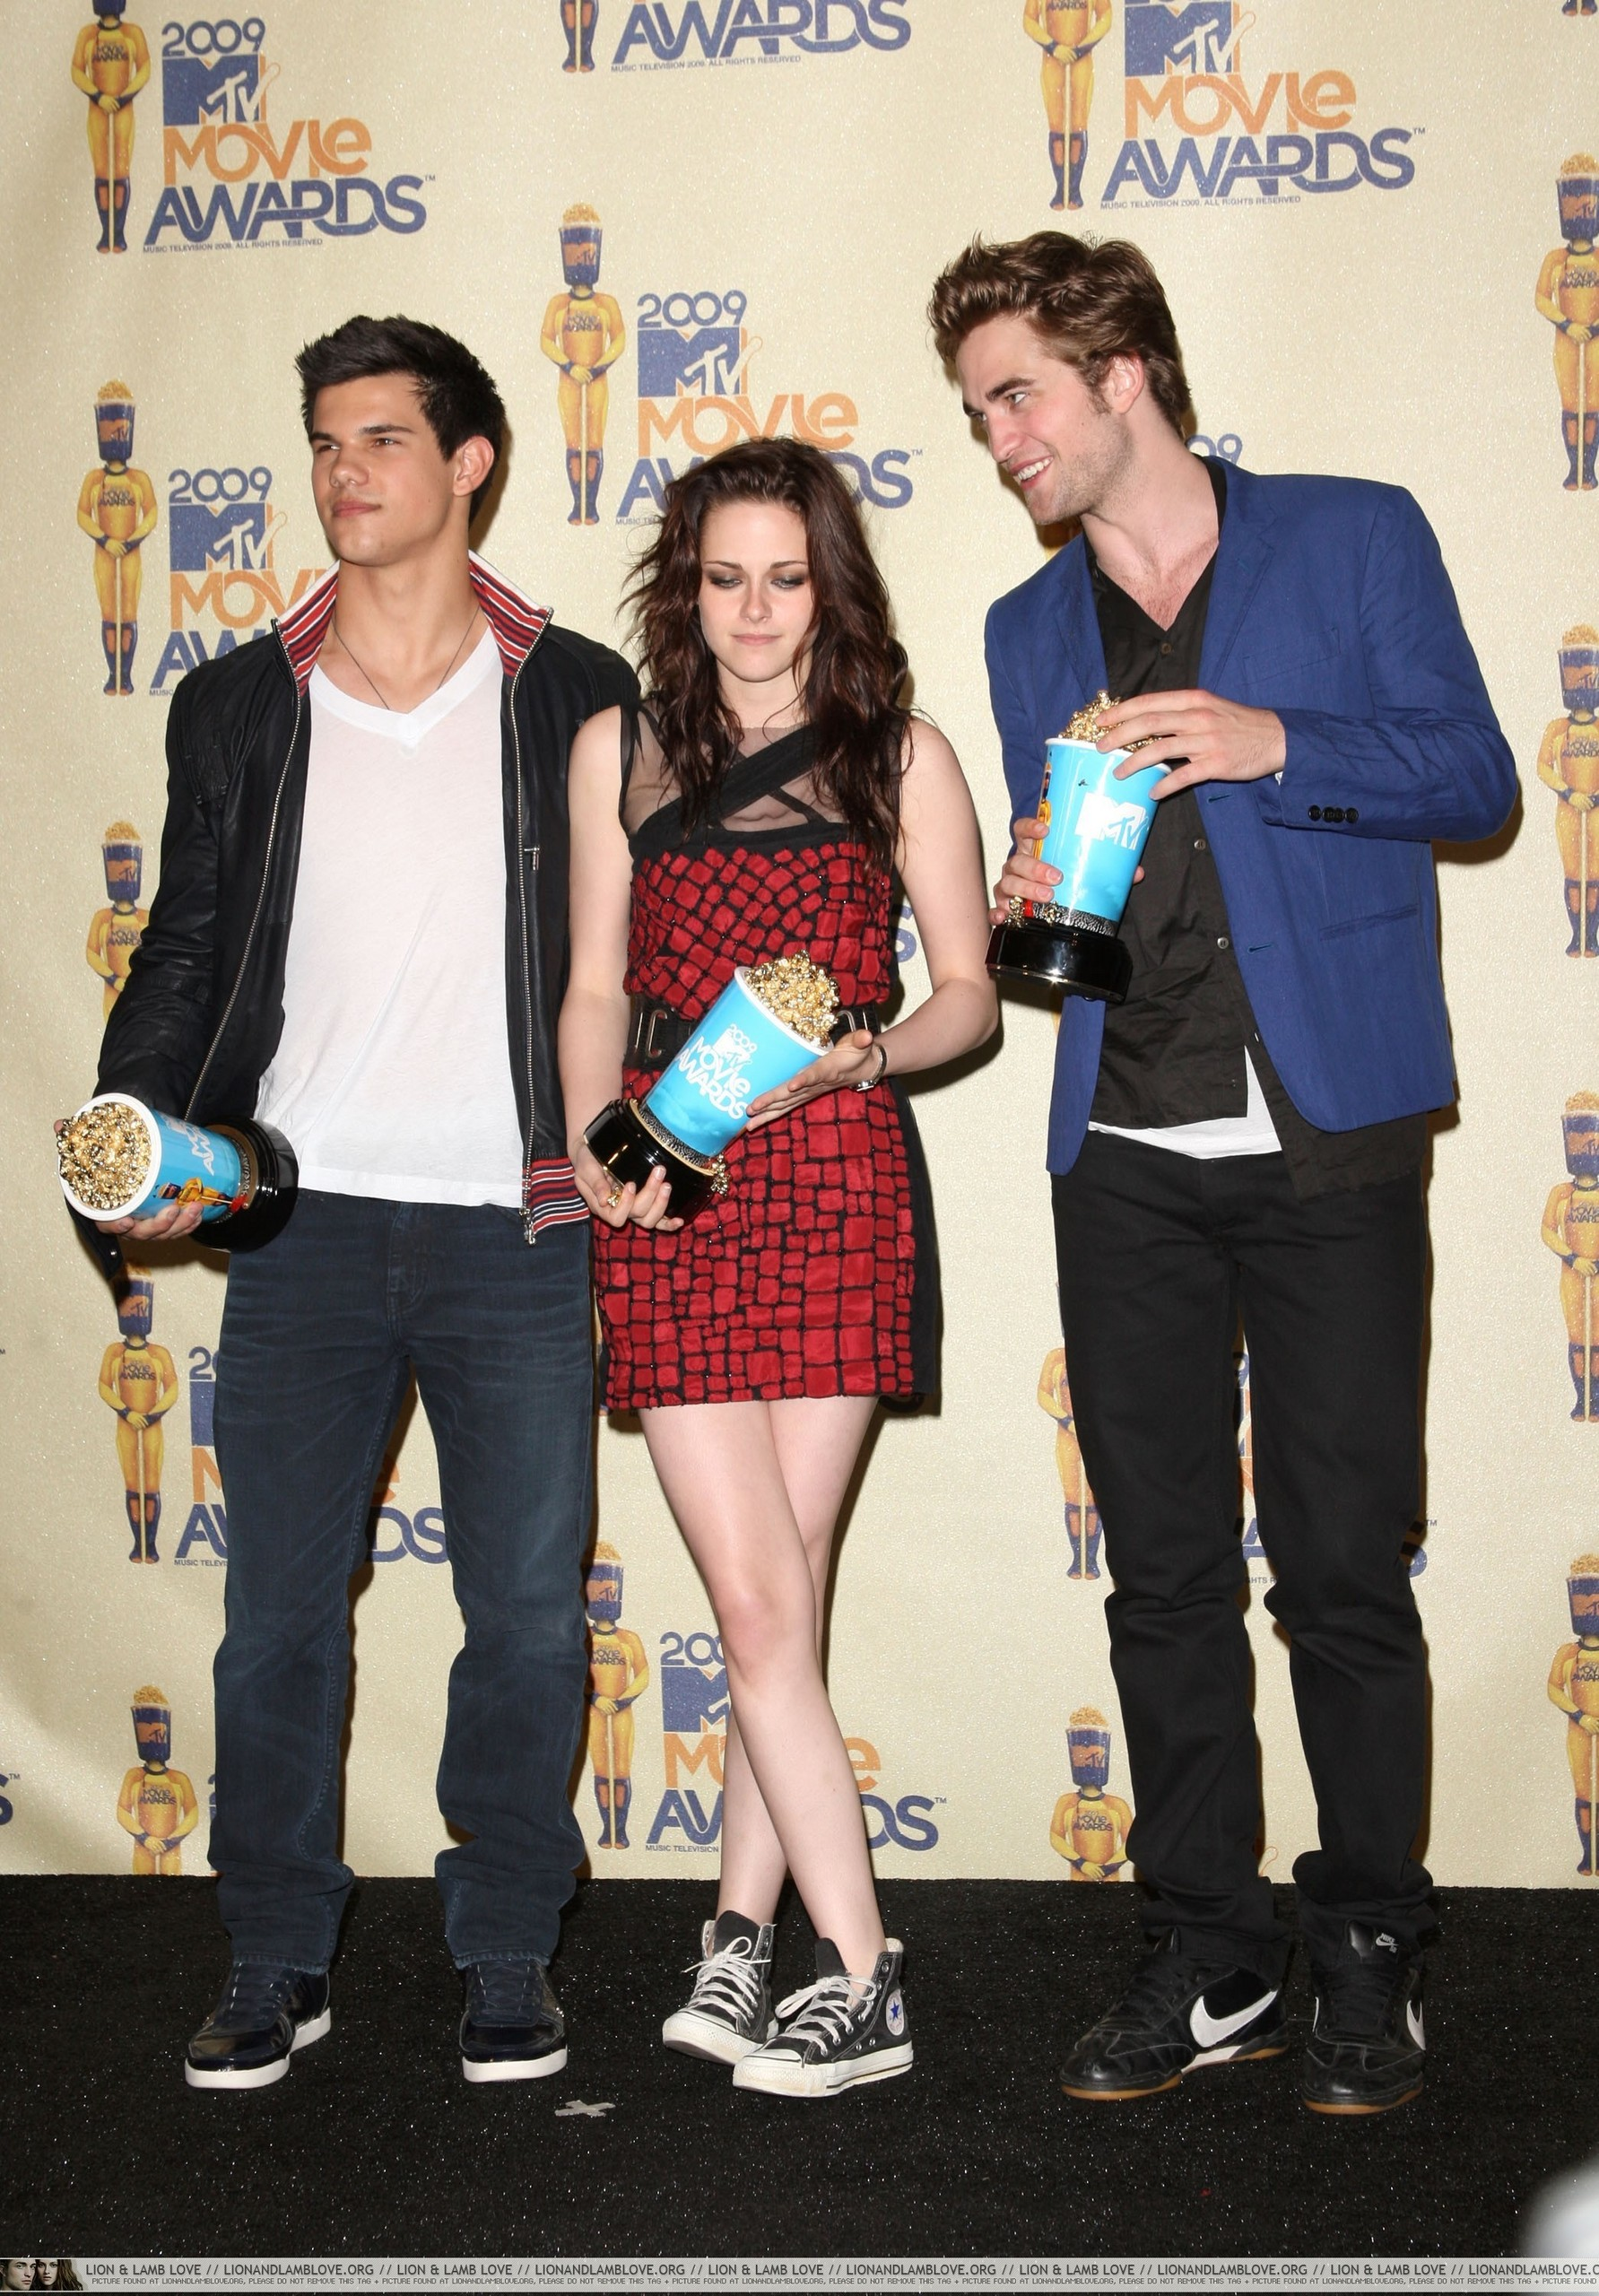 http://images2.fanpop.com/images/photos/6400000/2009-MTV-Movie-Awards-Press-Room-twilight-series-6495711-1783-2560.jpg